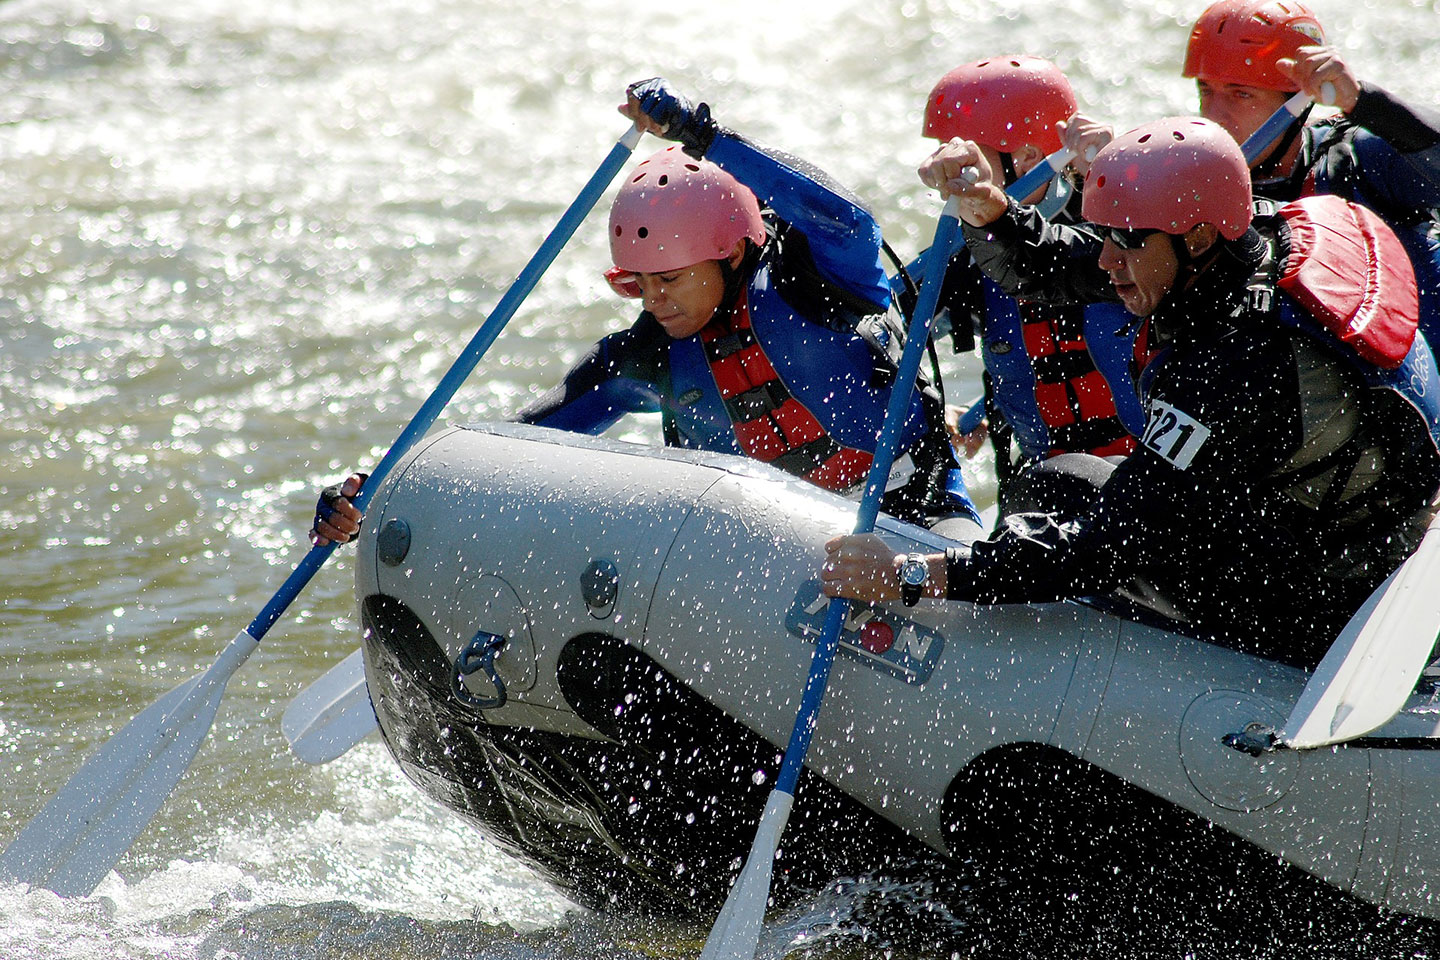 rafting team in a boat